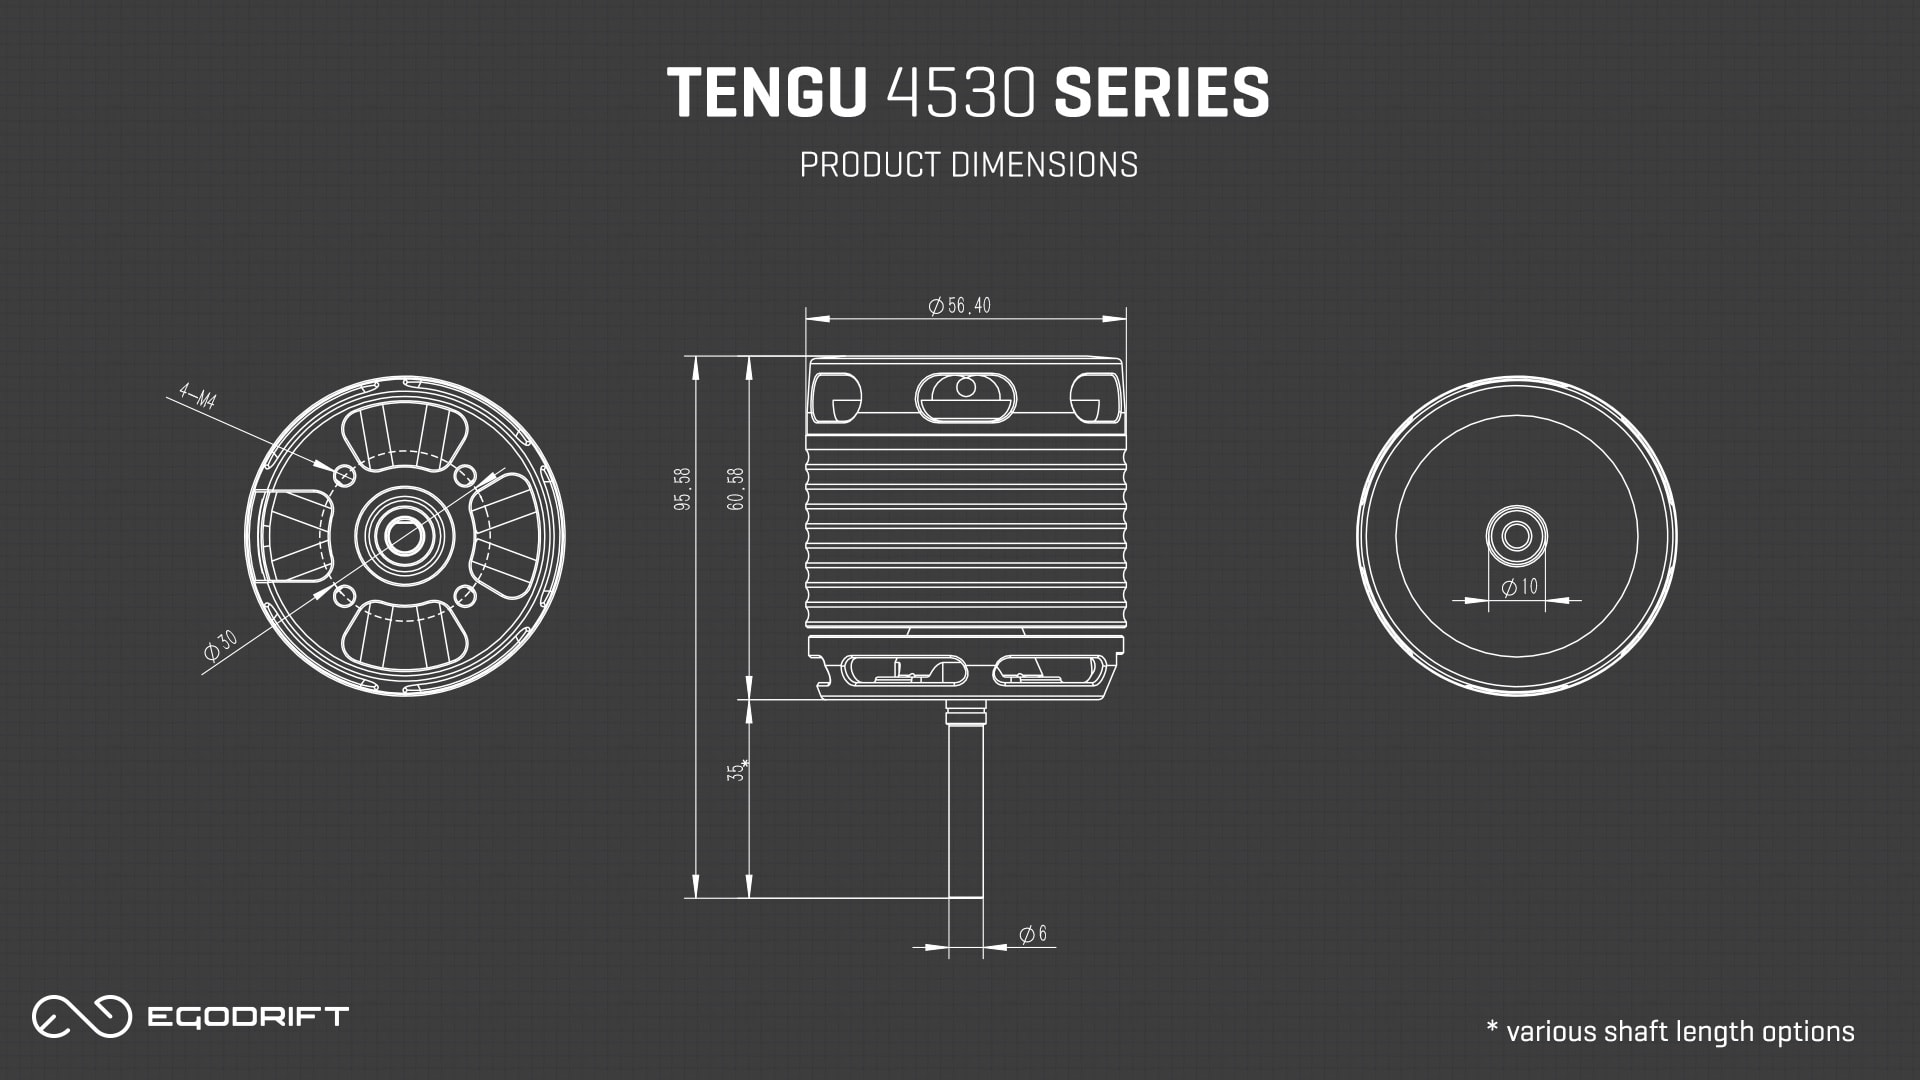 EGODRIFT Tengu 4530 HS/HT Product Dimensions